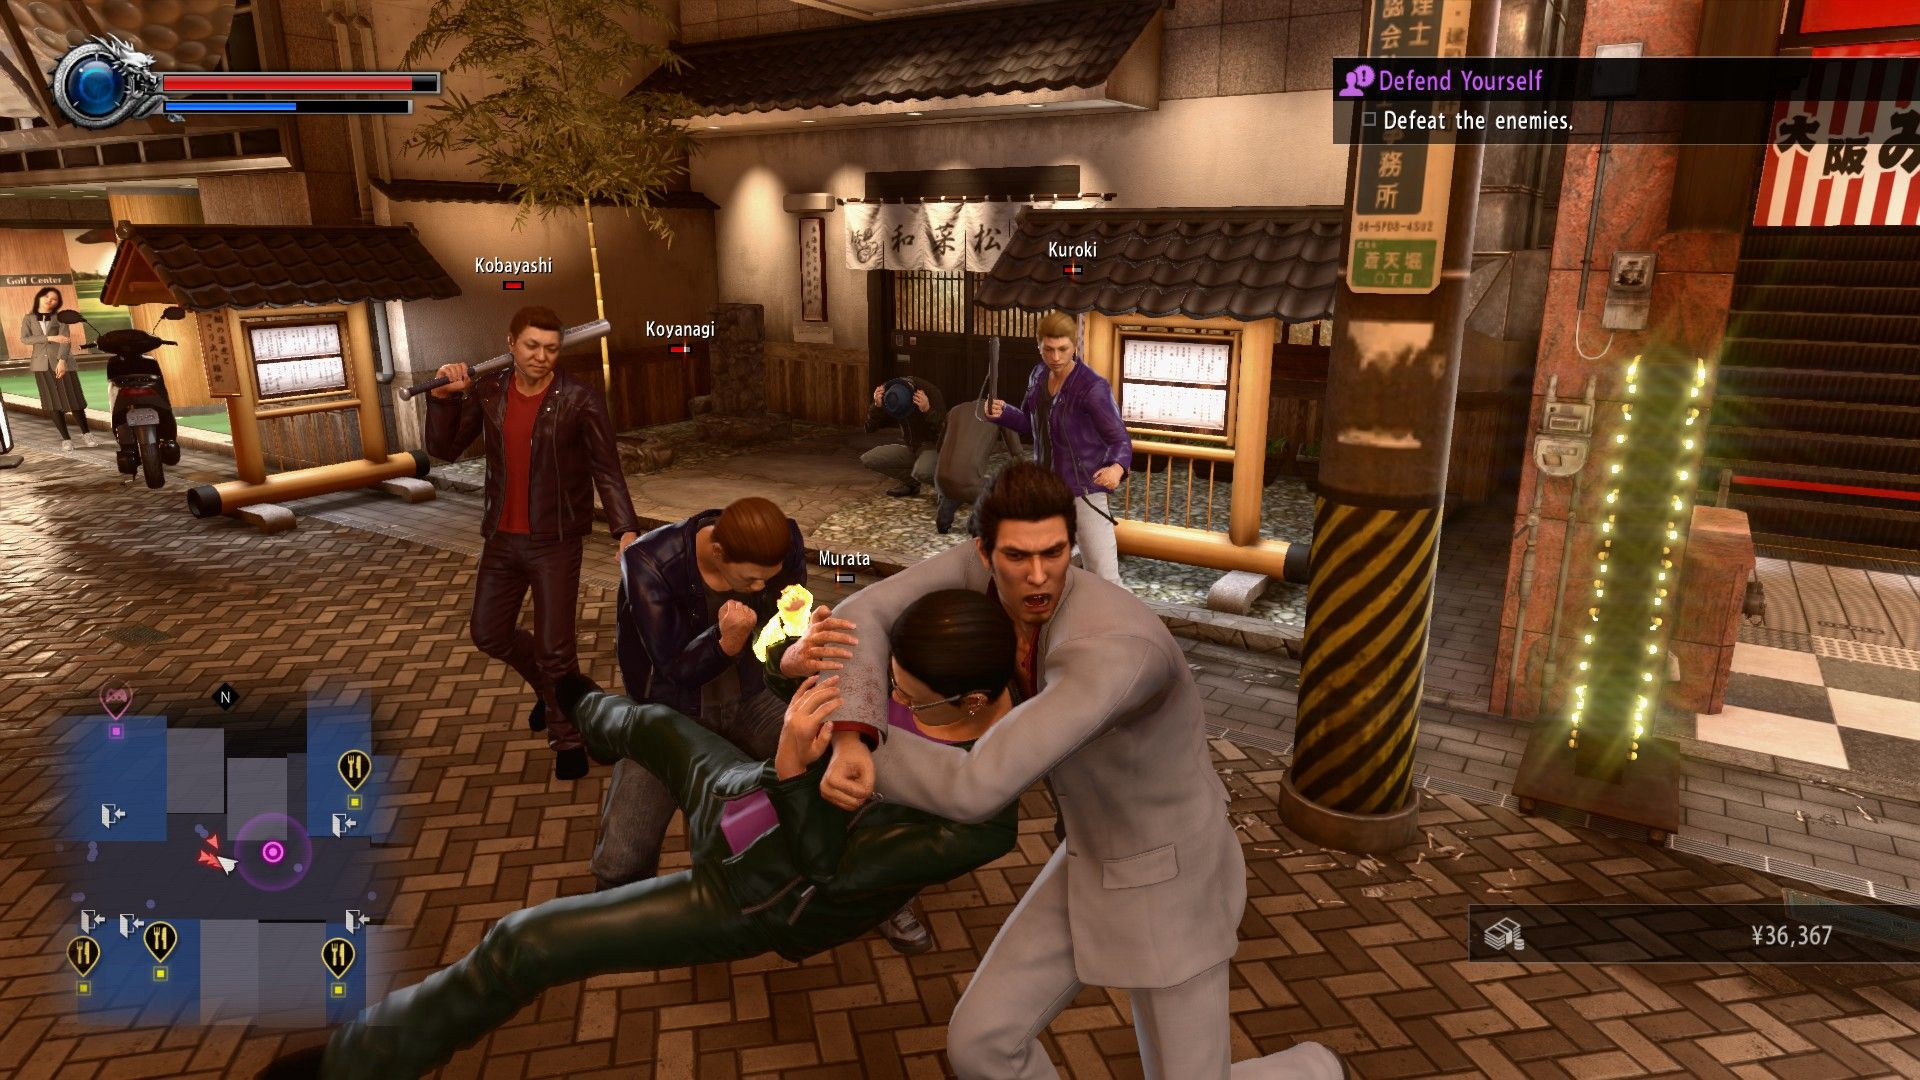 A picture of Kiryu throwing a man into other men